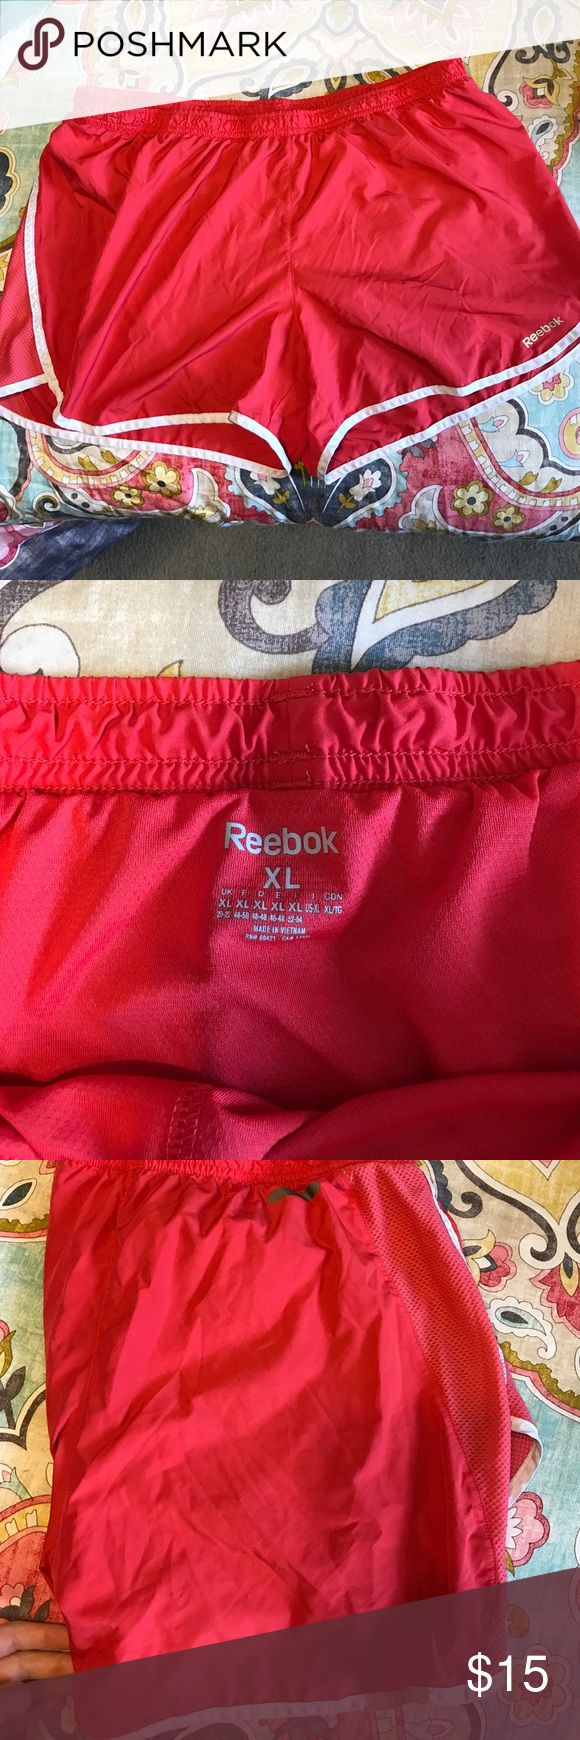 NWOT Reebok dri fit athletic running shorts coral Super comfy and soft, just too big for me. Similar look and feel to the Nike dri fit shorts, bundle to save more money. Smoke free home Nike Shorts